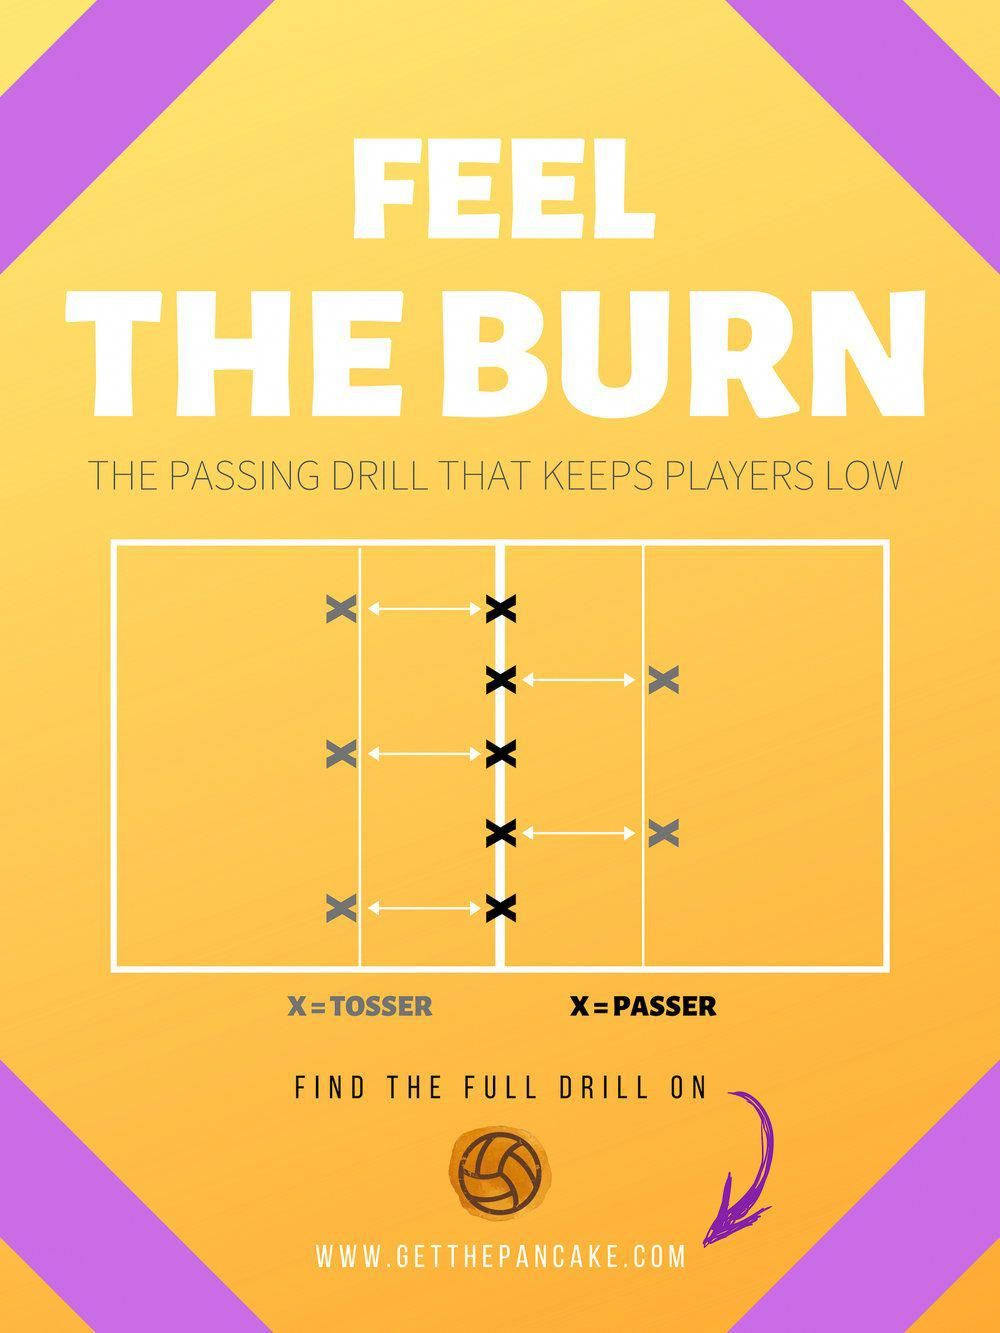 Brisk Basketball Drills For Beginners Speak To An Expert Volleyball Workouts Passing Drills Volleyball Drills For Beginners